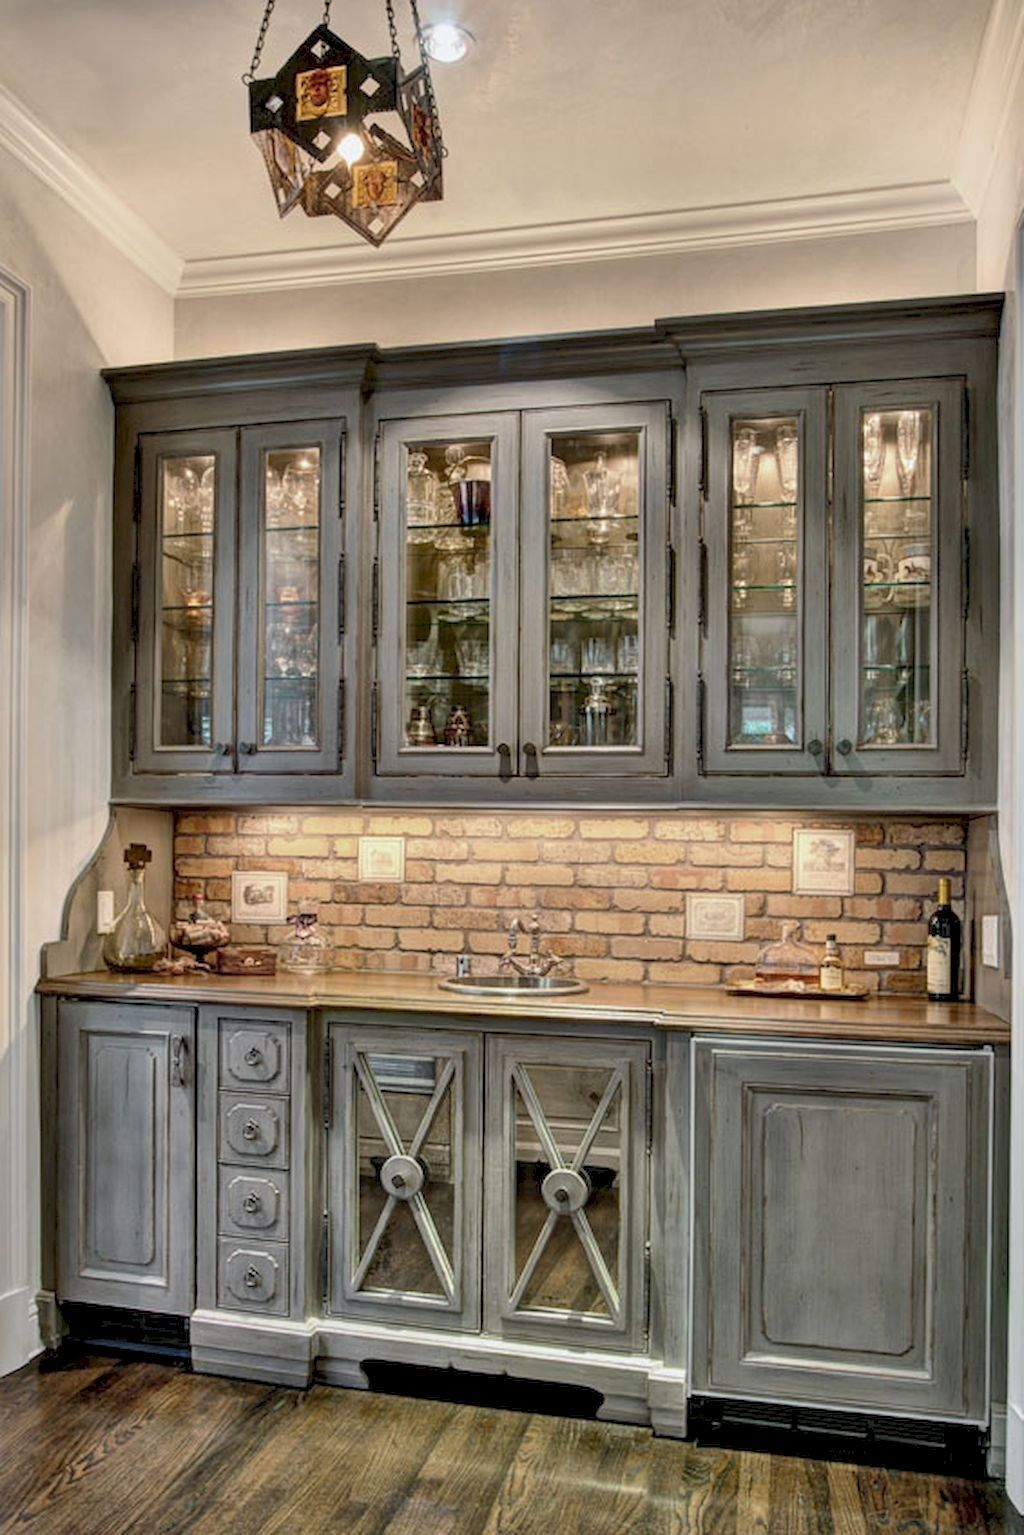 54 Luxury Farmhouse Kitchen Cabinet Makeover Design Ideas - Rustic farmhouse kitchen, Rustic kitchen, House styles, Farmhouse kitchen cabinets, Brick backsplash, New homes - Kitchen cabinet ideas can complete your farmhouse kitchen  If we talk about the farmhouse kitchen cabinet, it will remind us of the landscape of rural America in the 20th century  In this style, we are more than just talking about… Continue Reading →